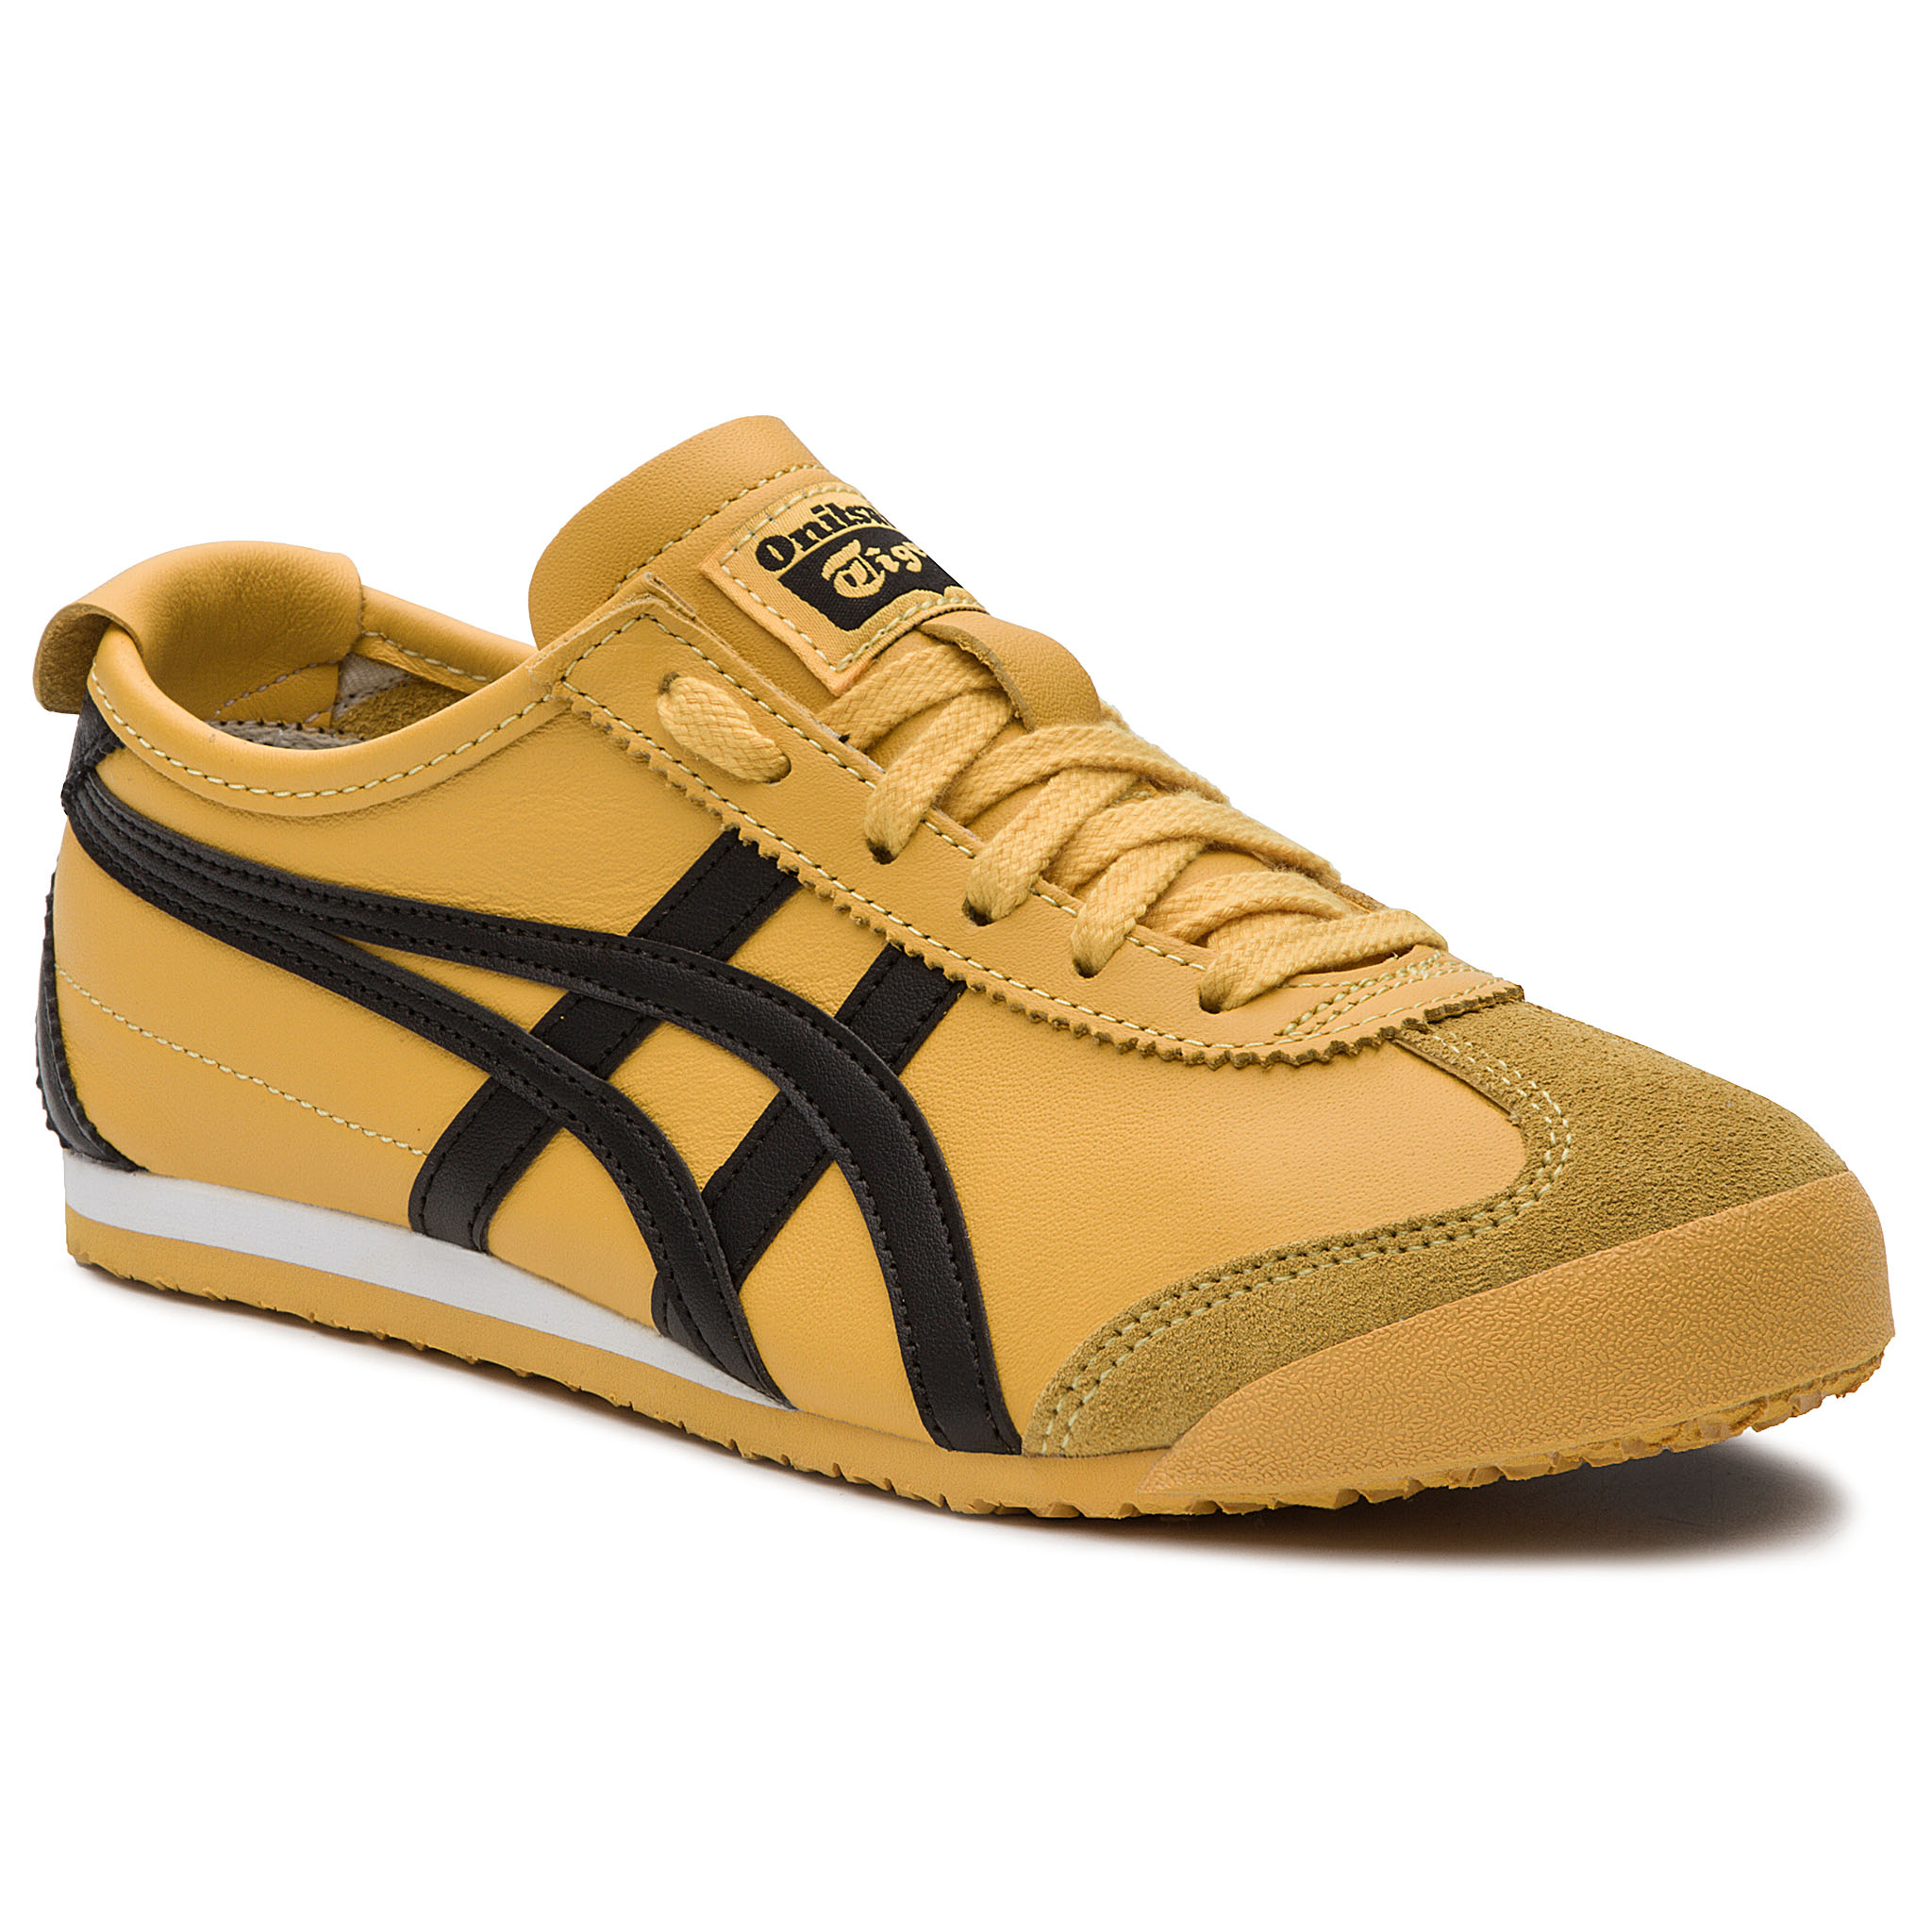 Sneakers ONITSUKA TIGER - Mexico 66 DL408 Yellow/Black 0490